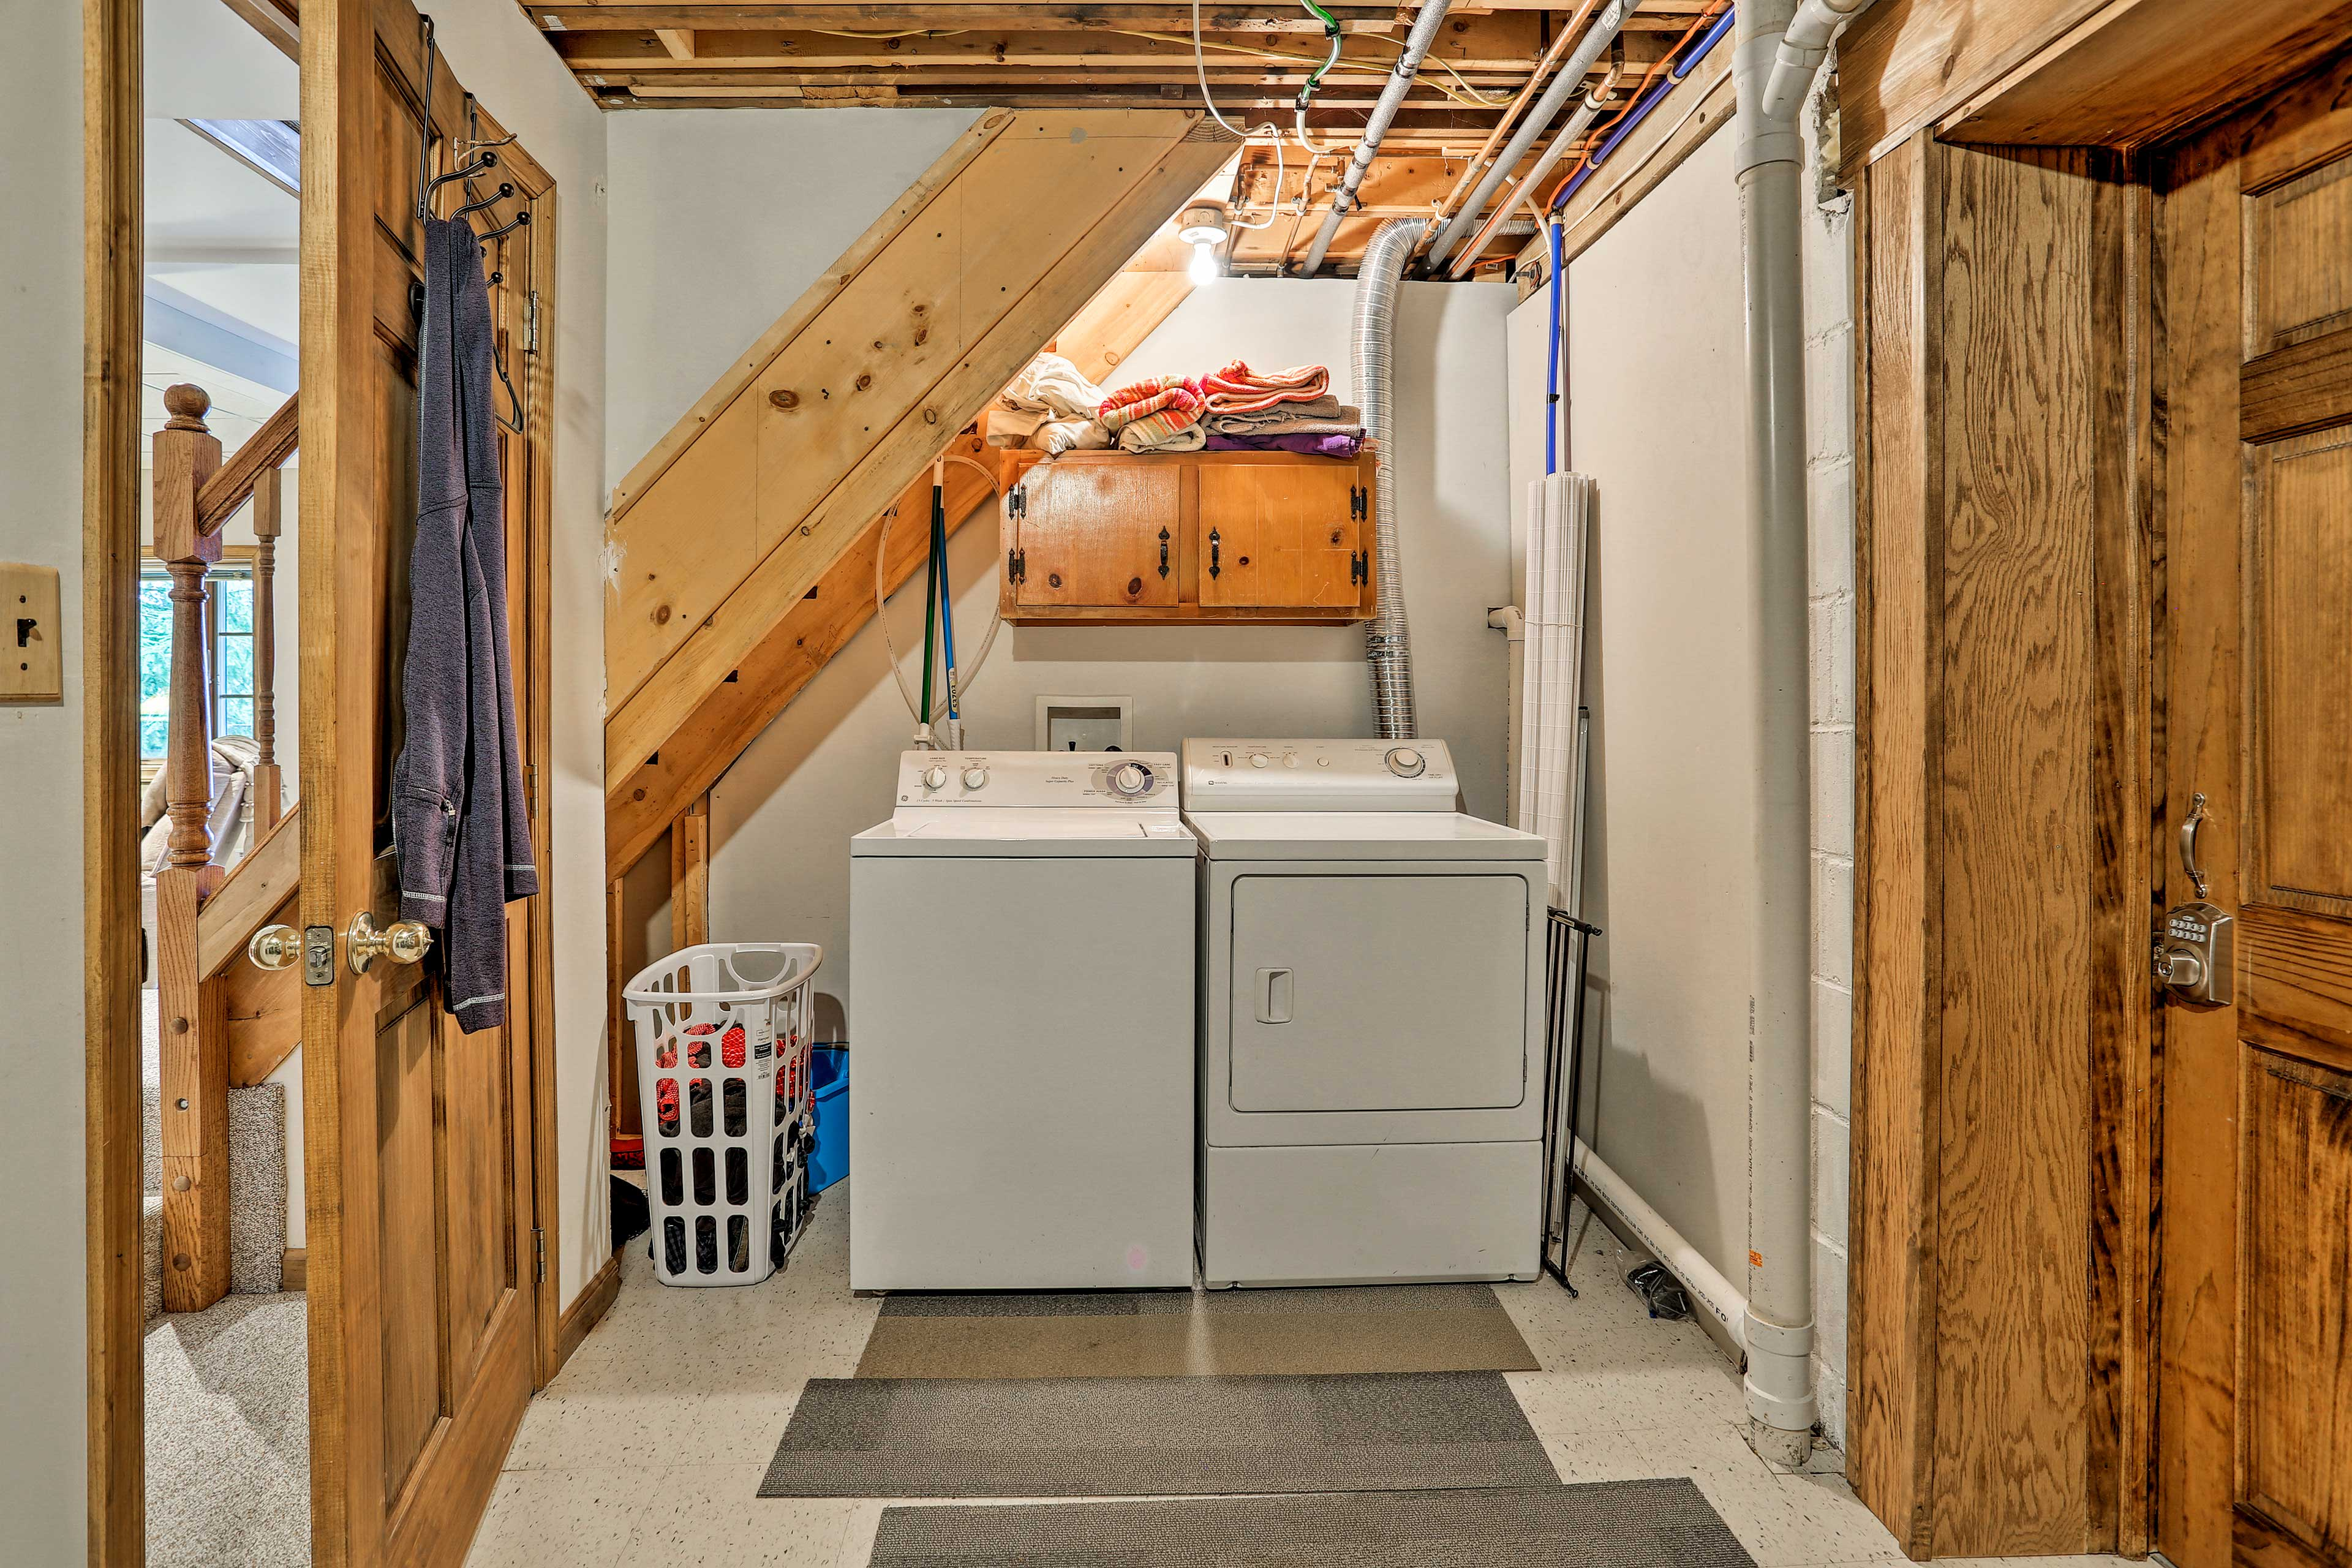 Keep your wardrobe fresh with the washer/dryer.